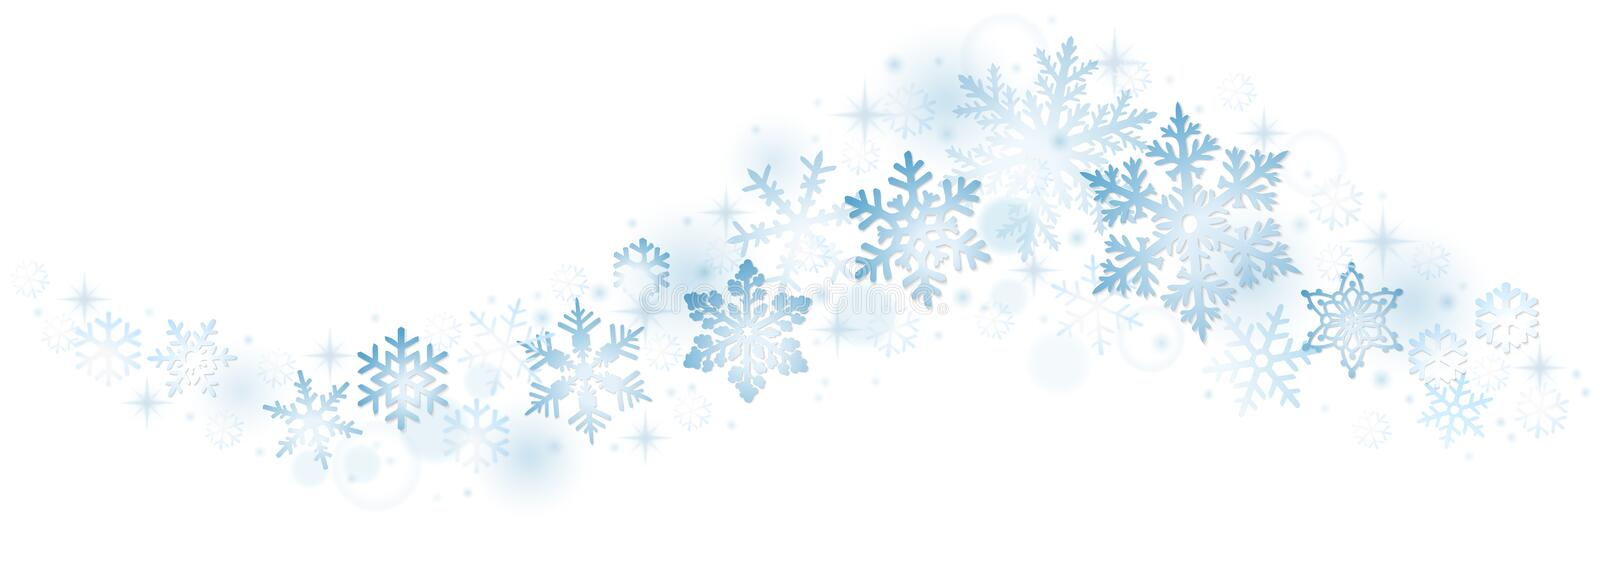 Swirl of blue snowflakes royalty free illustration